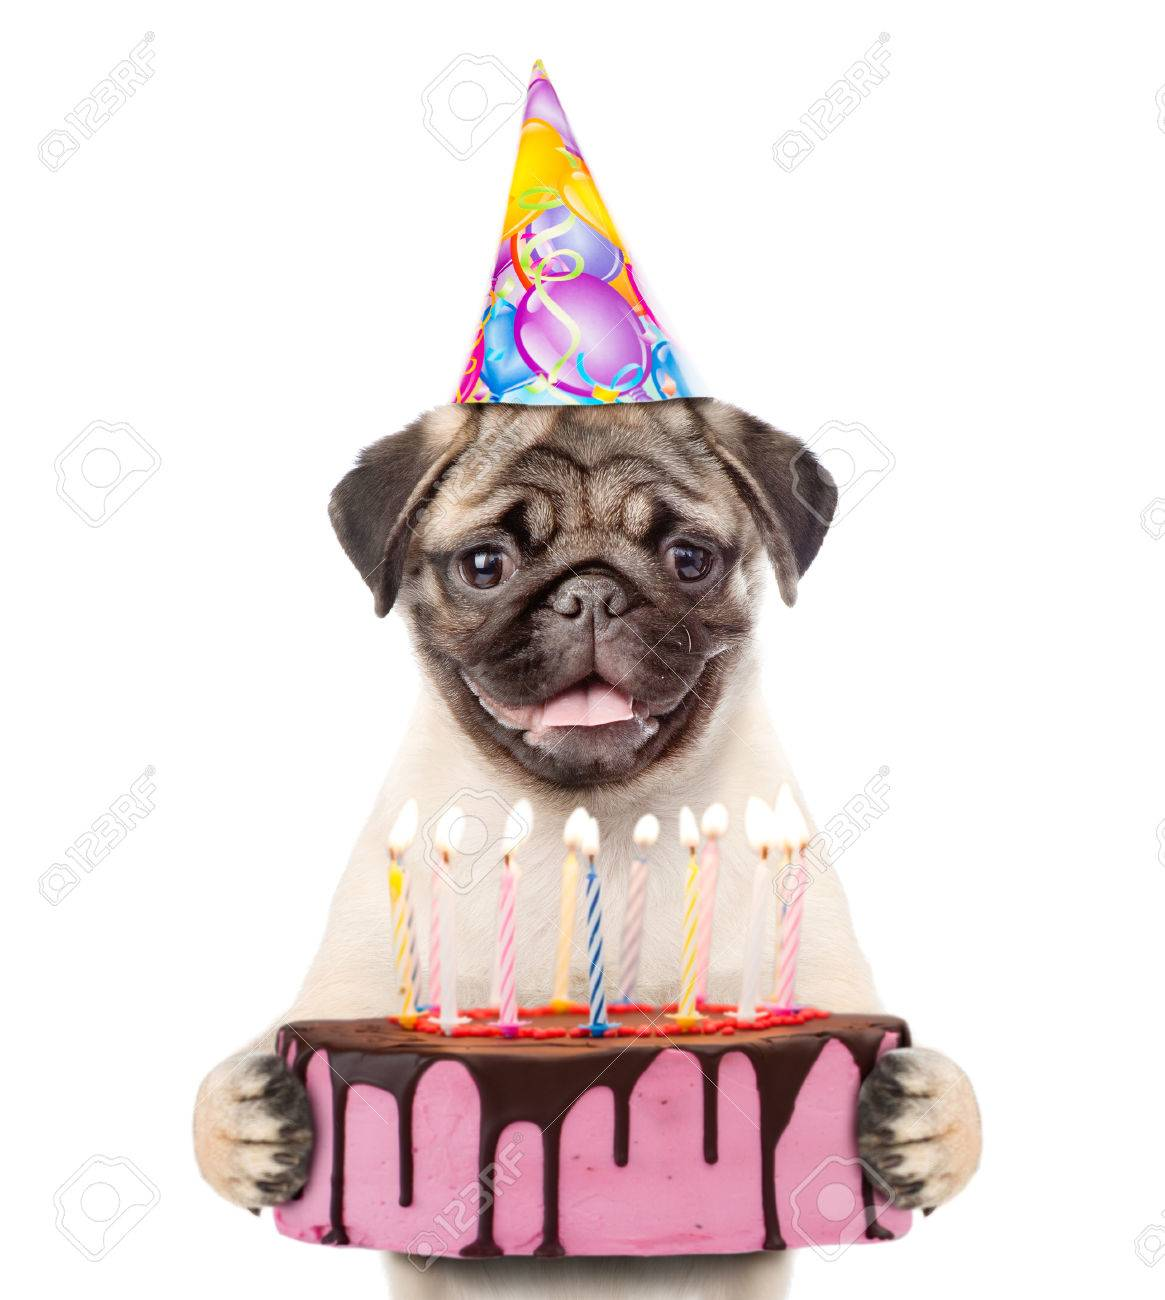 Funny Puppy In Party Hat Holding Birthday Cake With Many Burning Candles Isolated On White